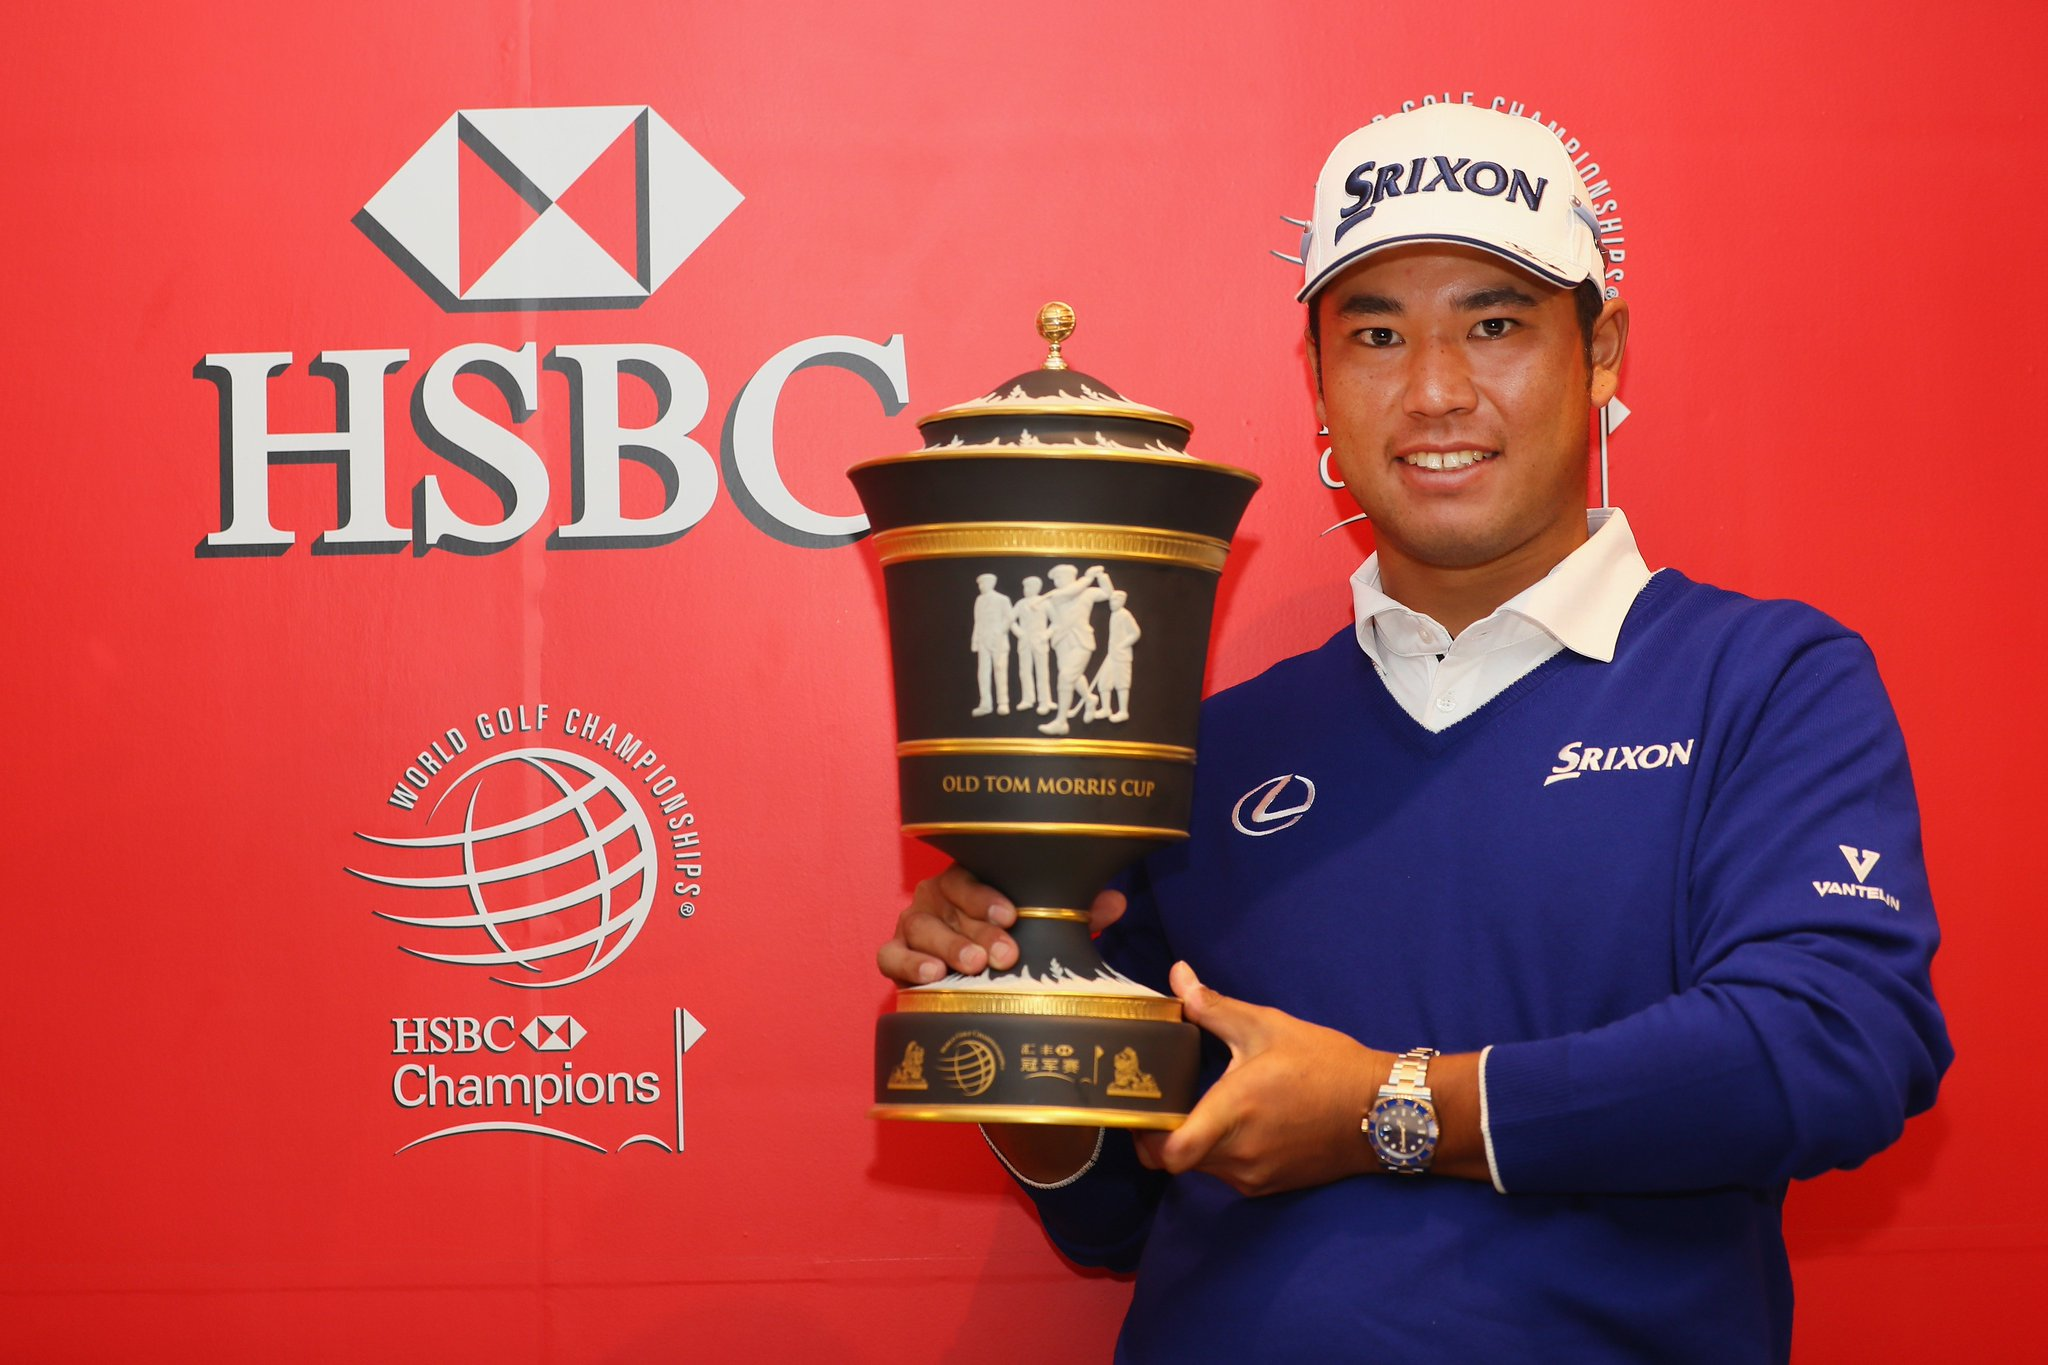 Storylines from next week's WGC-HSBC Champions.  The First Look: https://t.co/bHAkVY5jzf https://t.co/6DXfFdCbWM